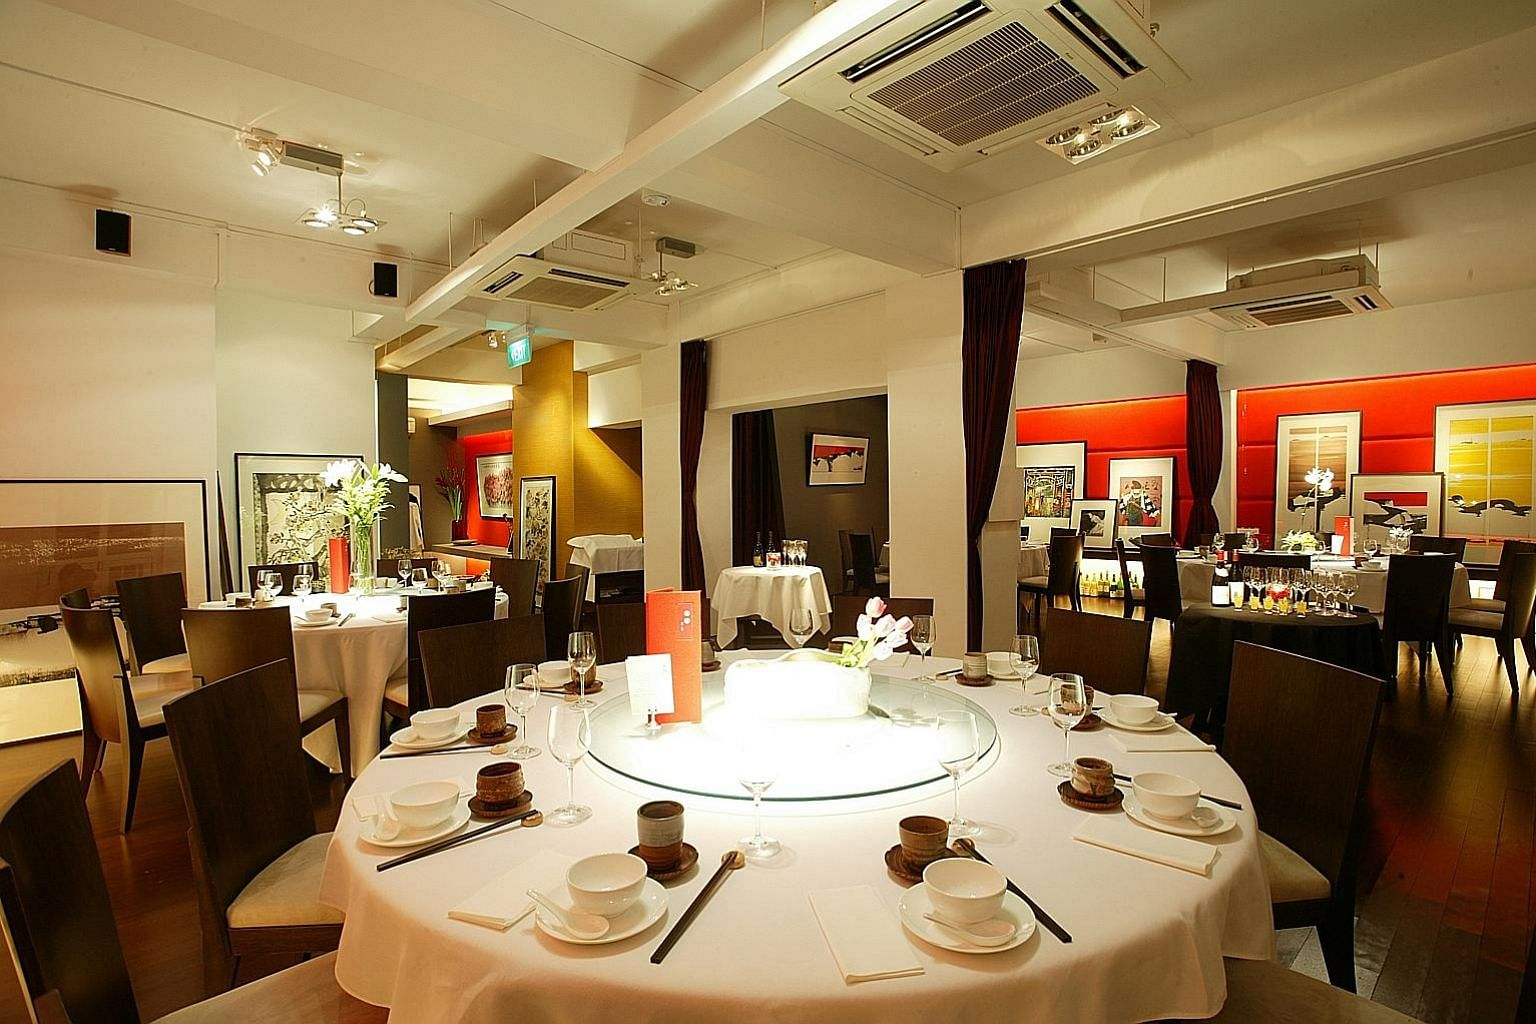 Xi Yan, one of Singapore's first and most well-known Chinese private dining restaurants, will be closing due to a hike in rental.